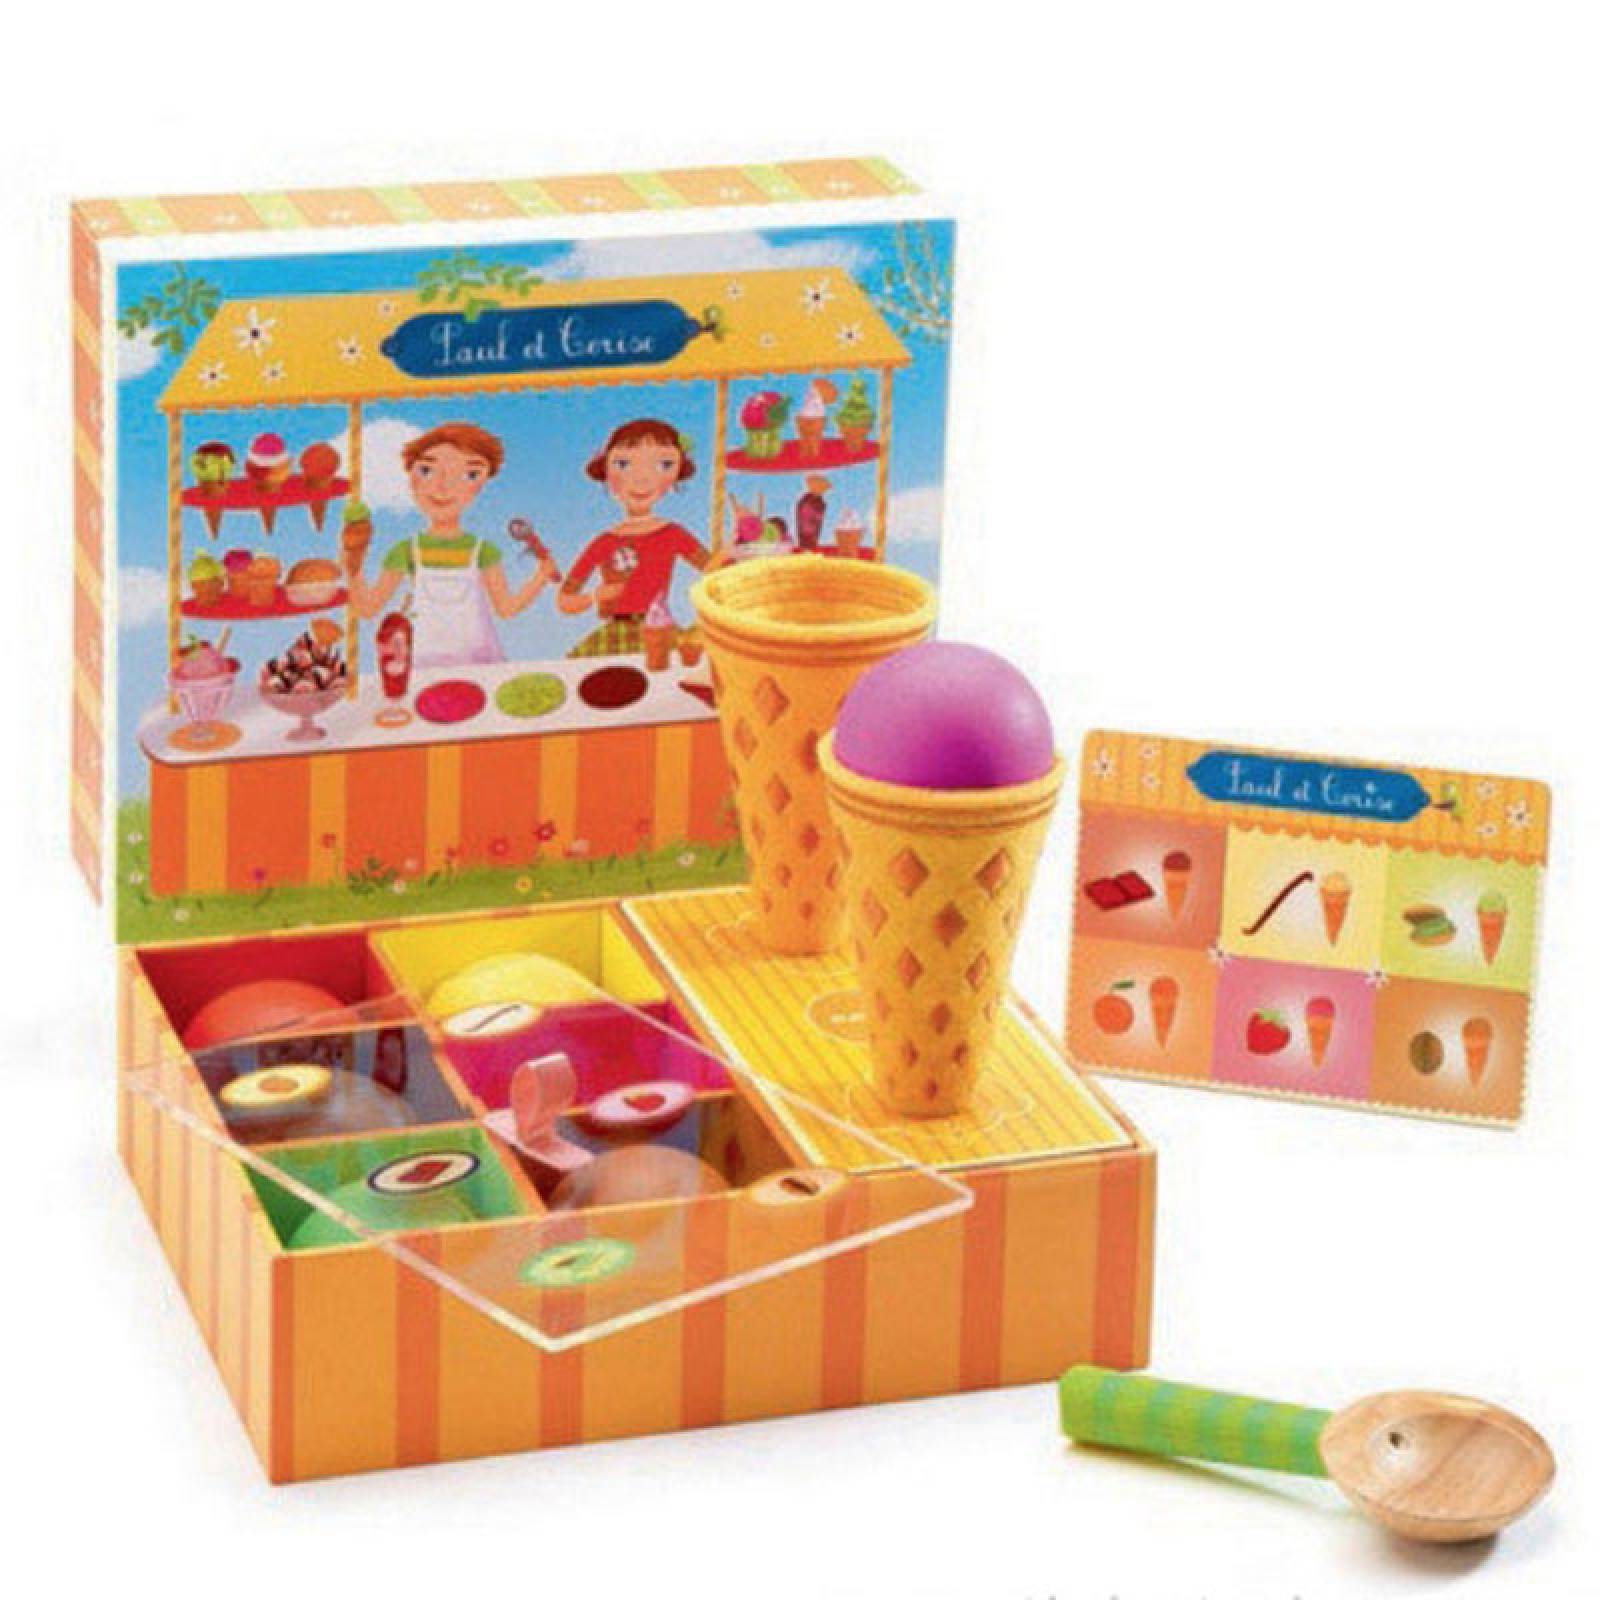 Icecream Wooden Playfood Set By Djeco 4+